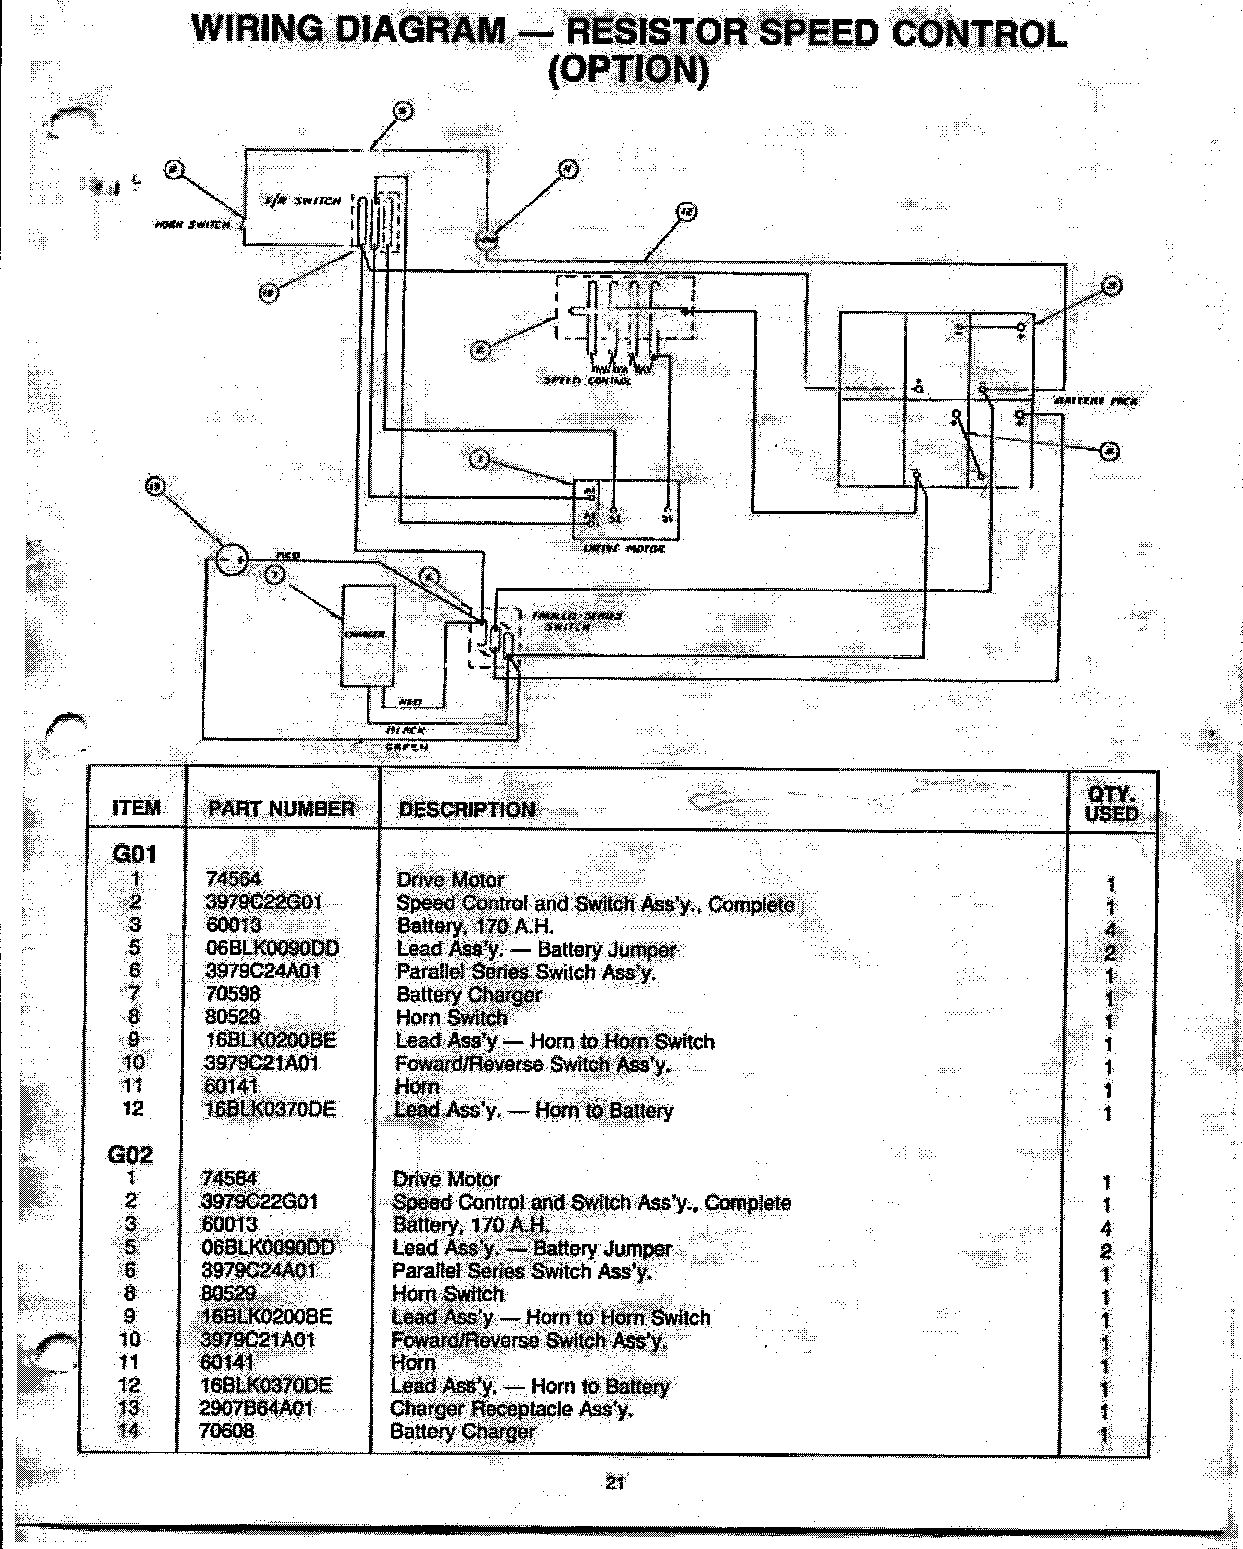 taylor dunn b0 248 48 wiring diagram   36 wiring diagram